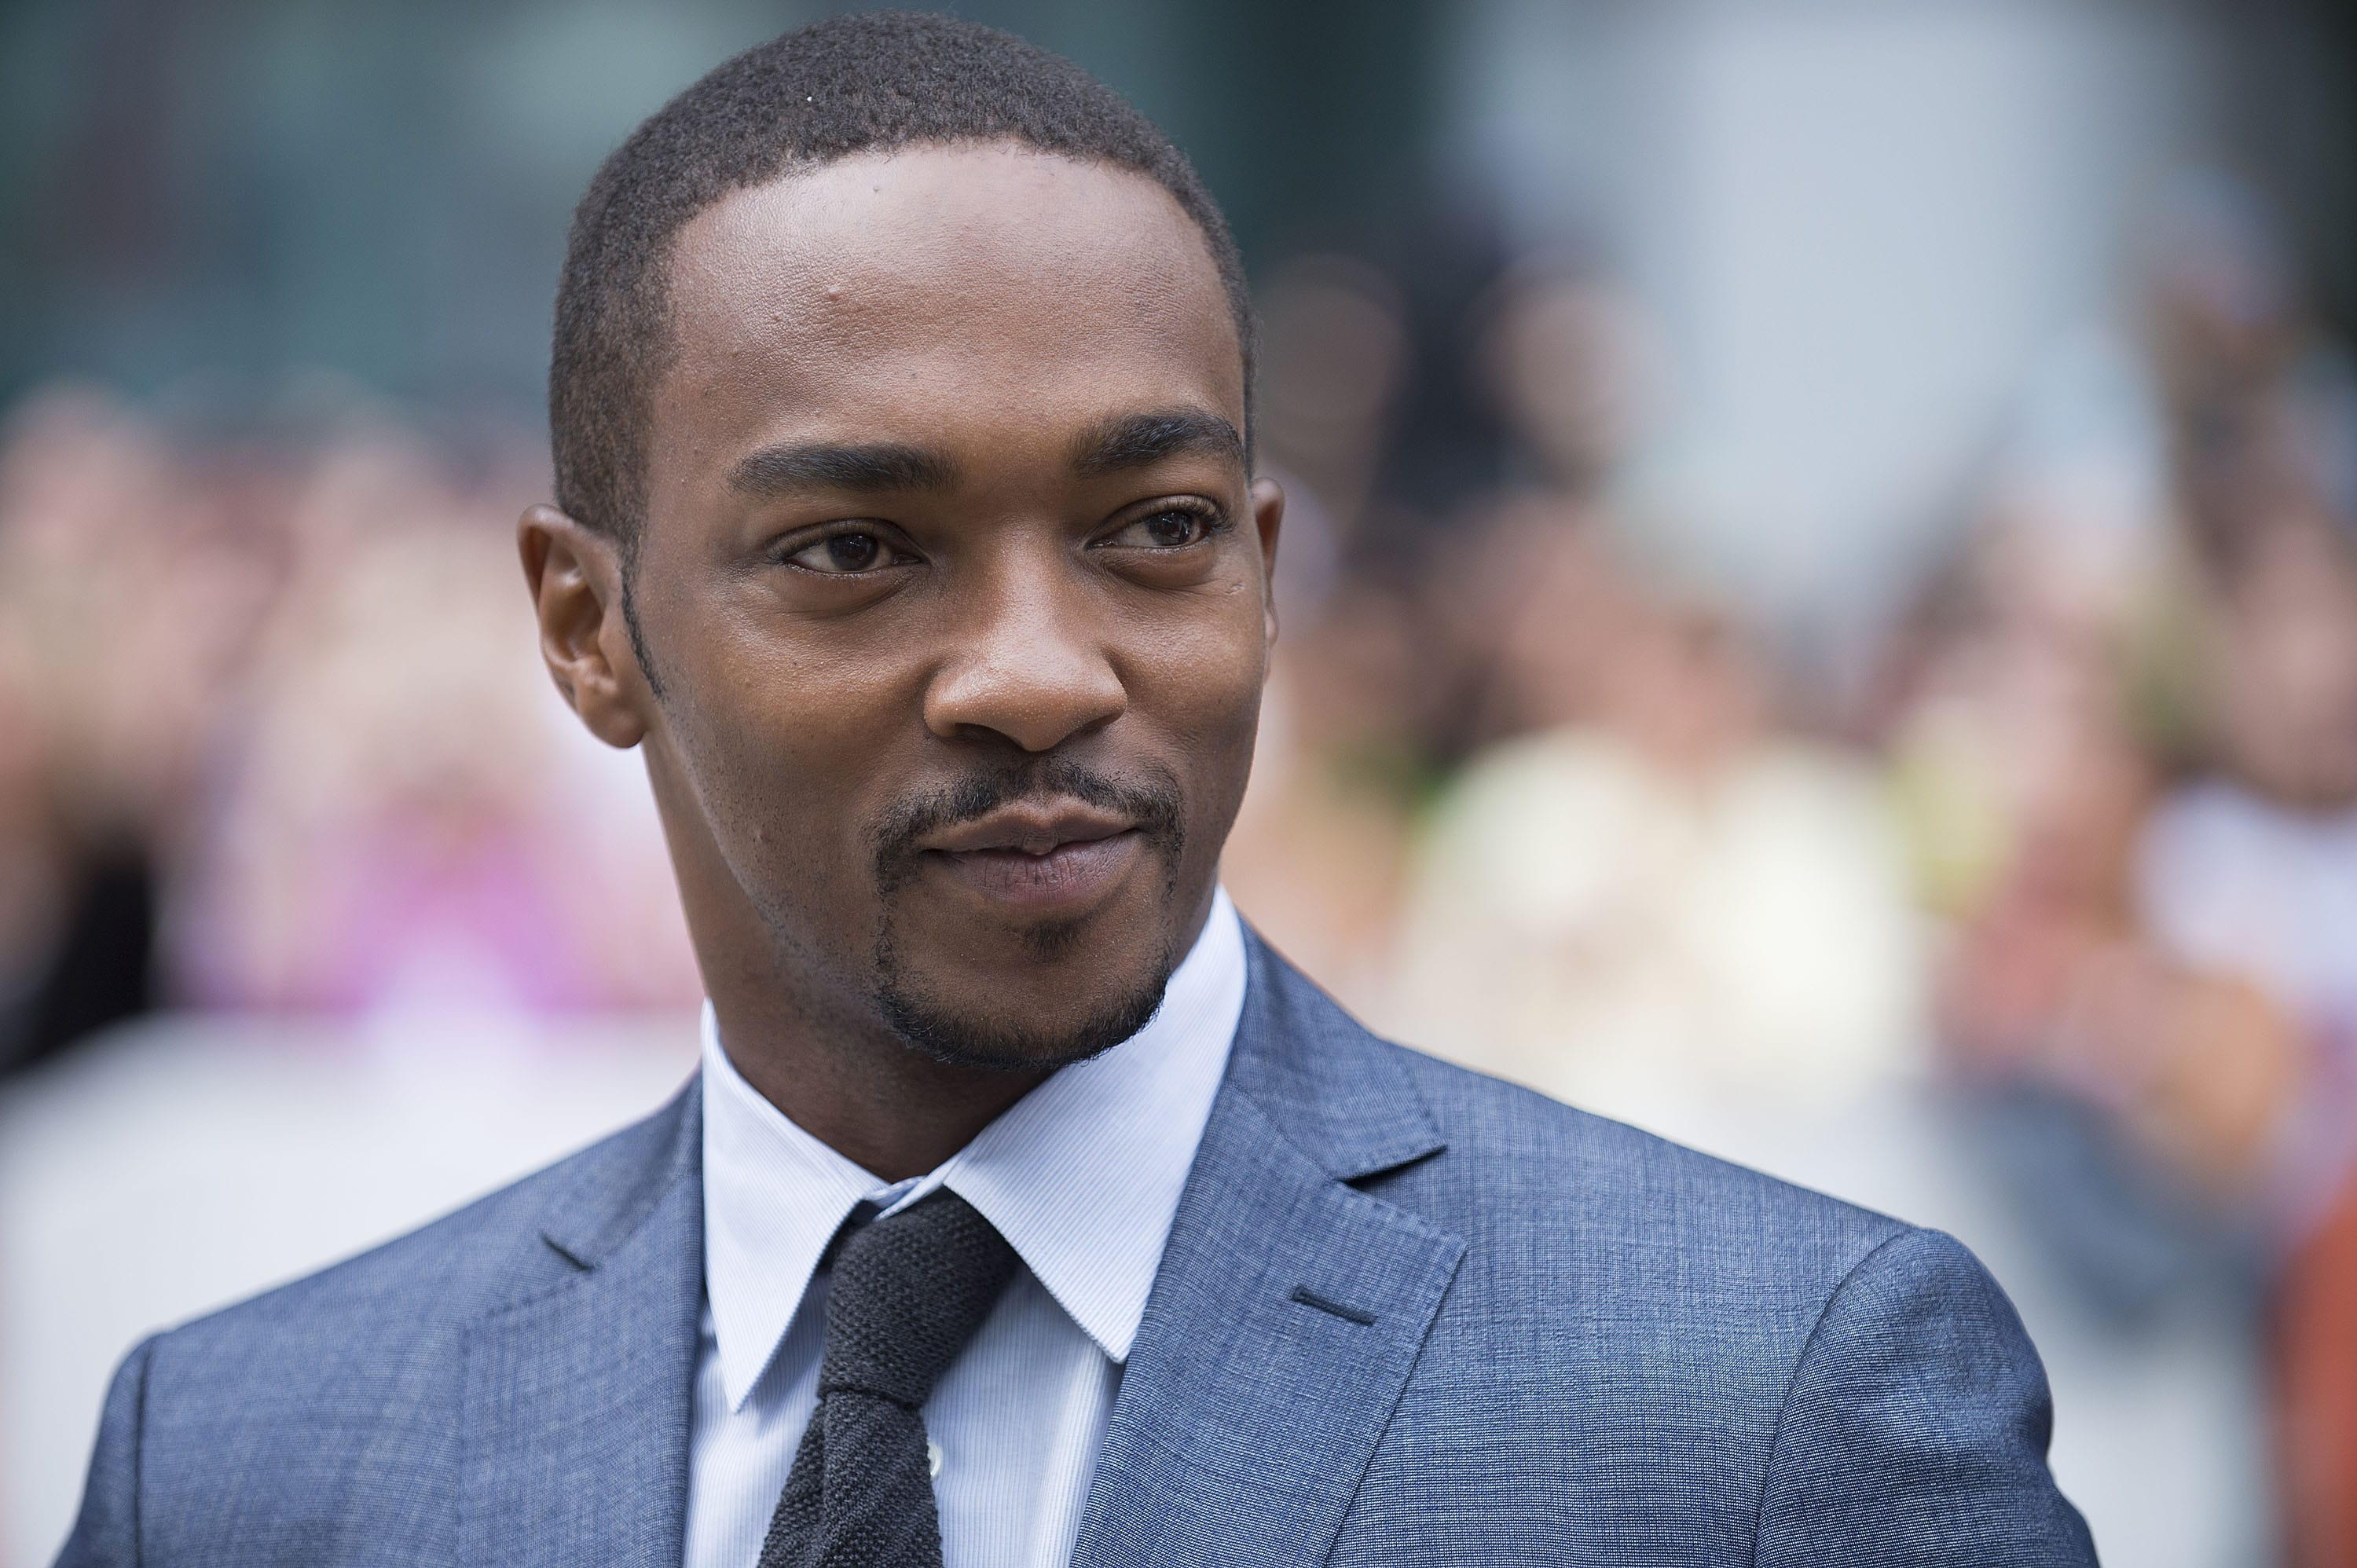 Anthony Mackie Wallpaper